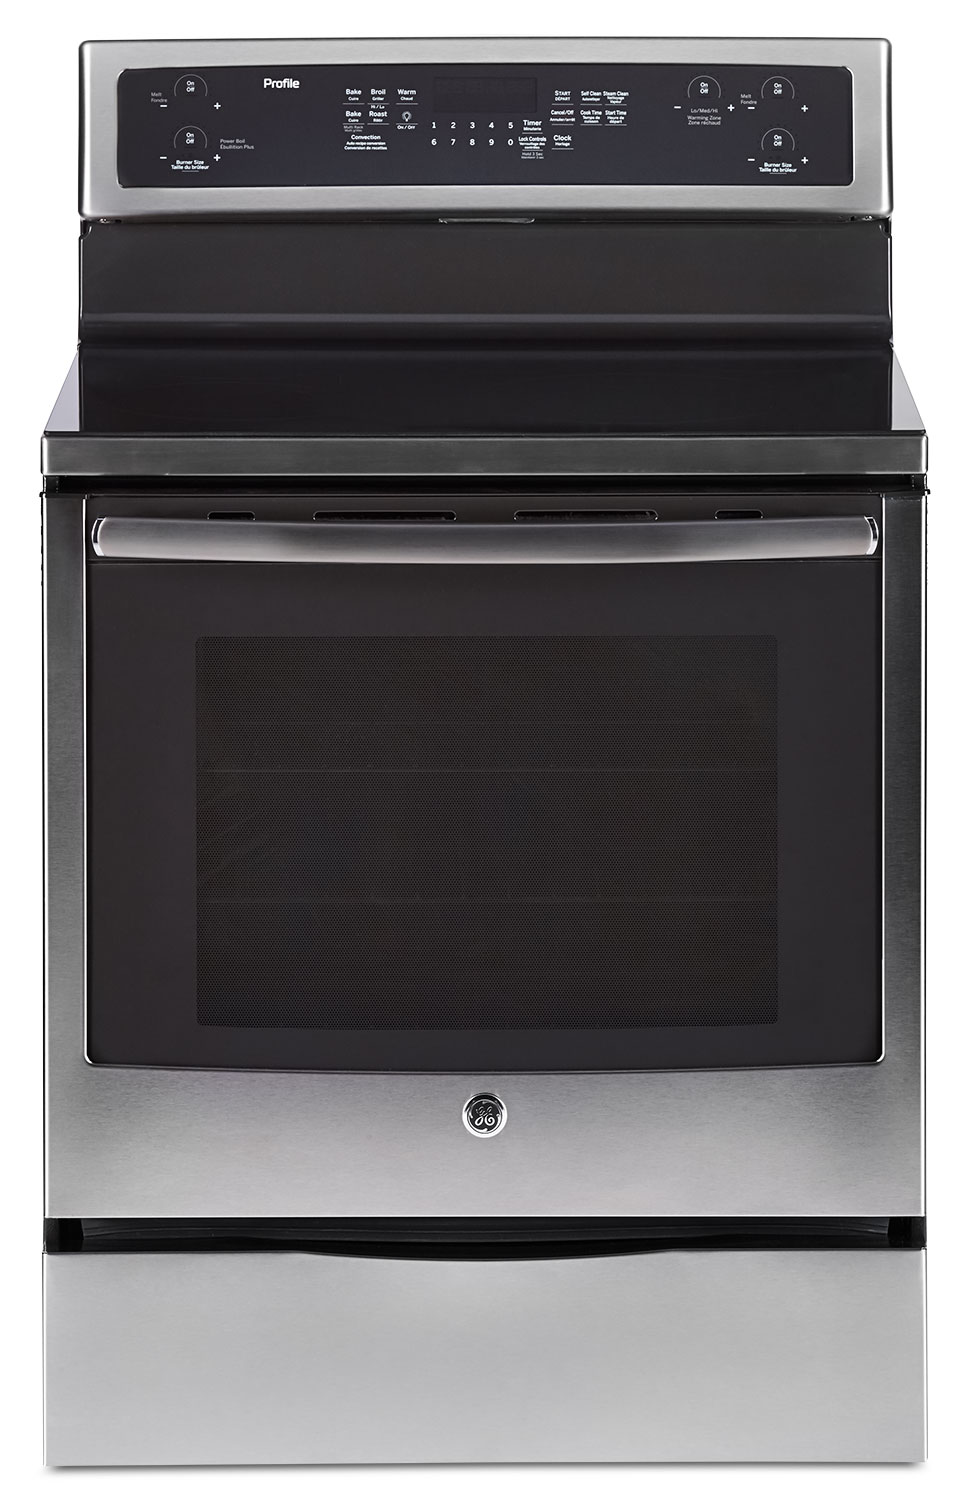 Cooking Products - GE 6.2 Cu. Ft. Freestanding Electric Range – PCB915SKSS